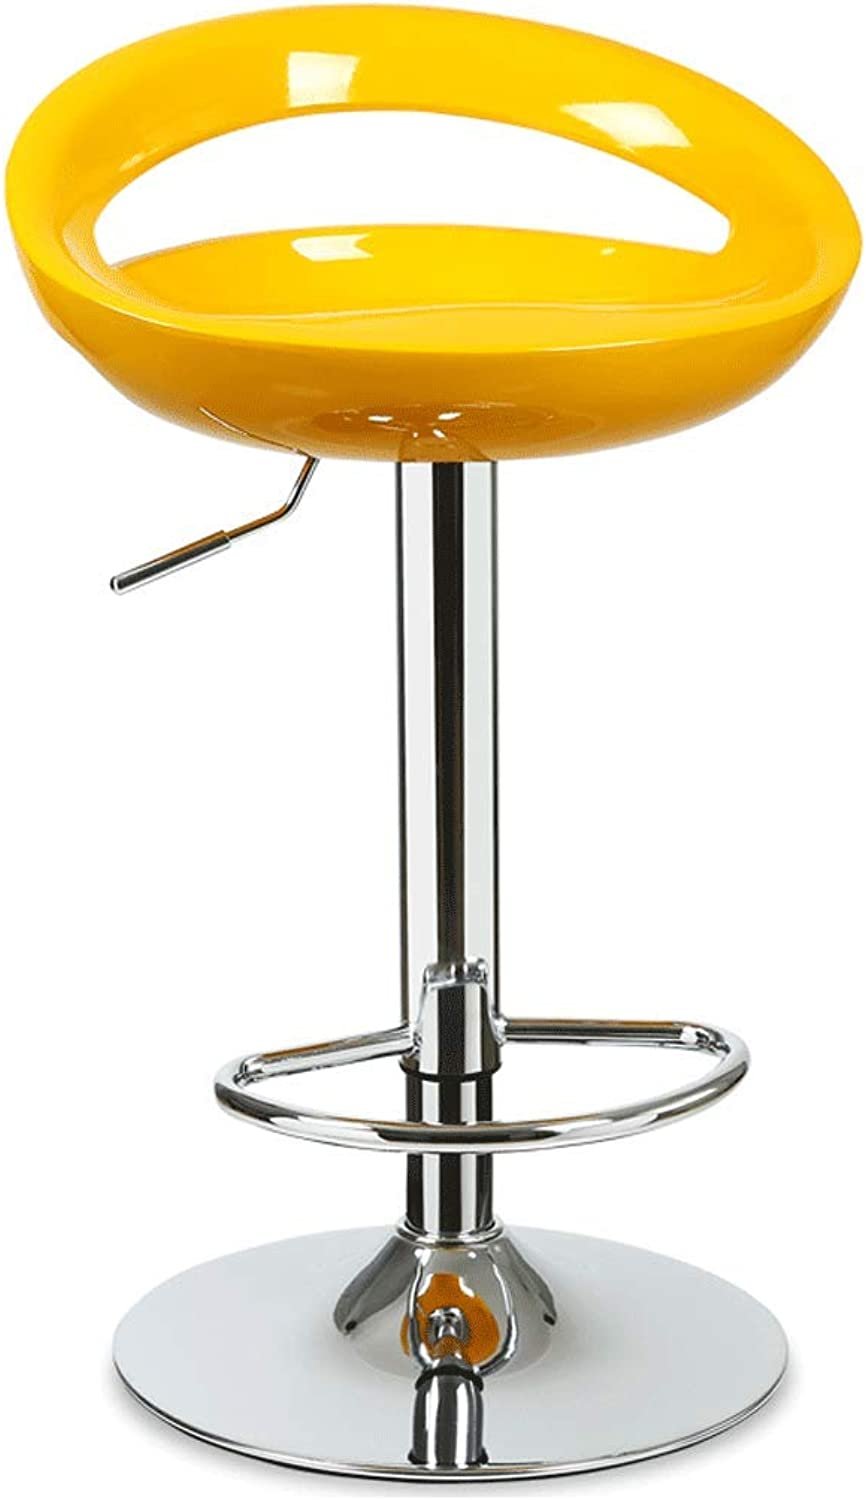 SLH Front Desk Chair Stool Modern Minimalist Bar Stool Bar Chair Lift Chair Bar Backrest Bar Stool (color   Yellow)